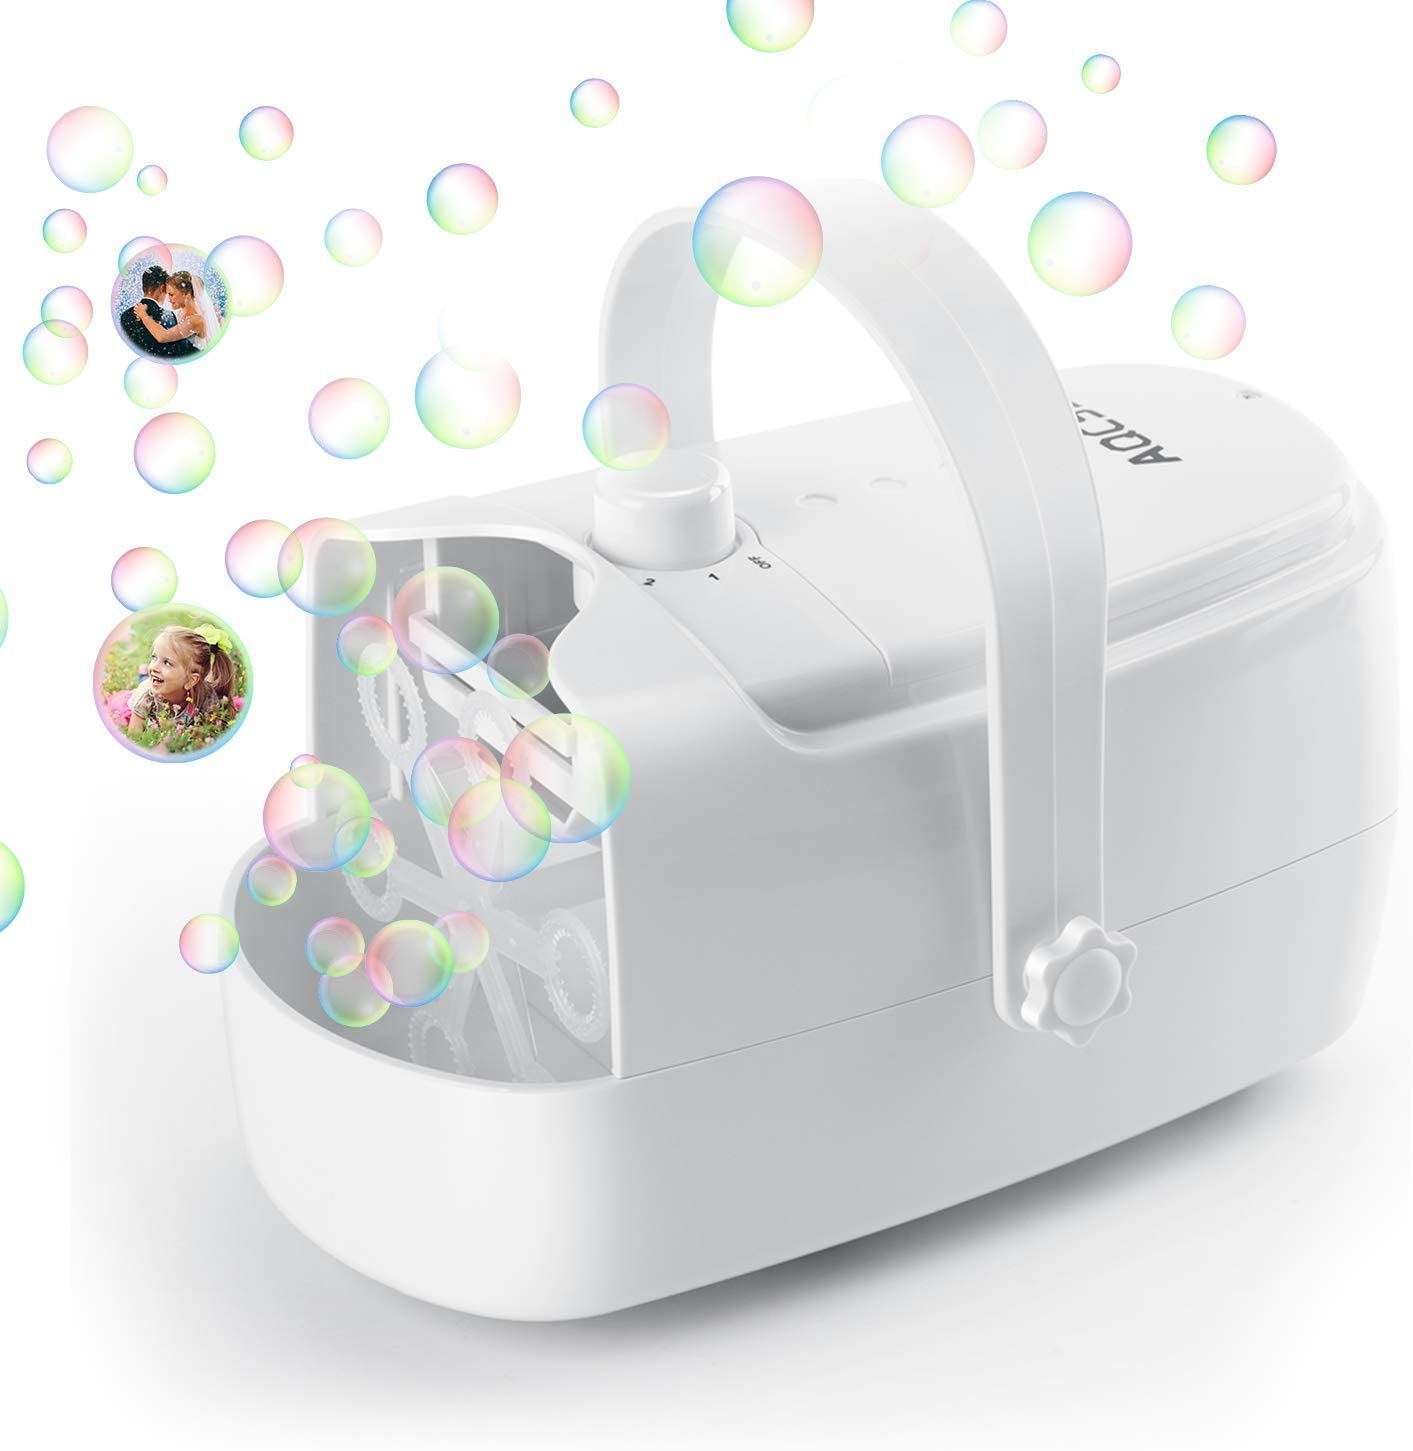 Automatic Bubble Maker for Kids